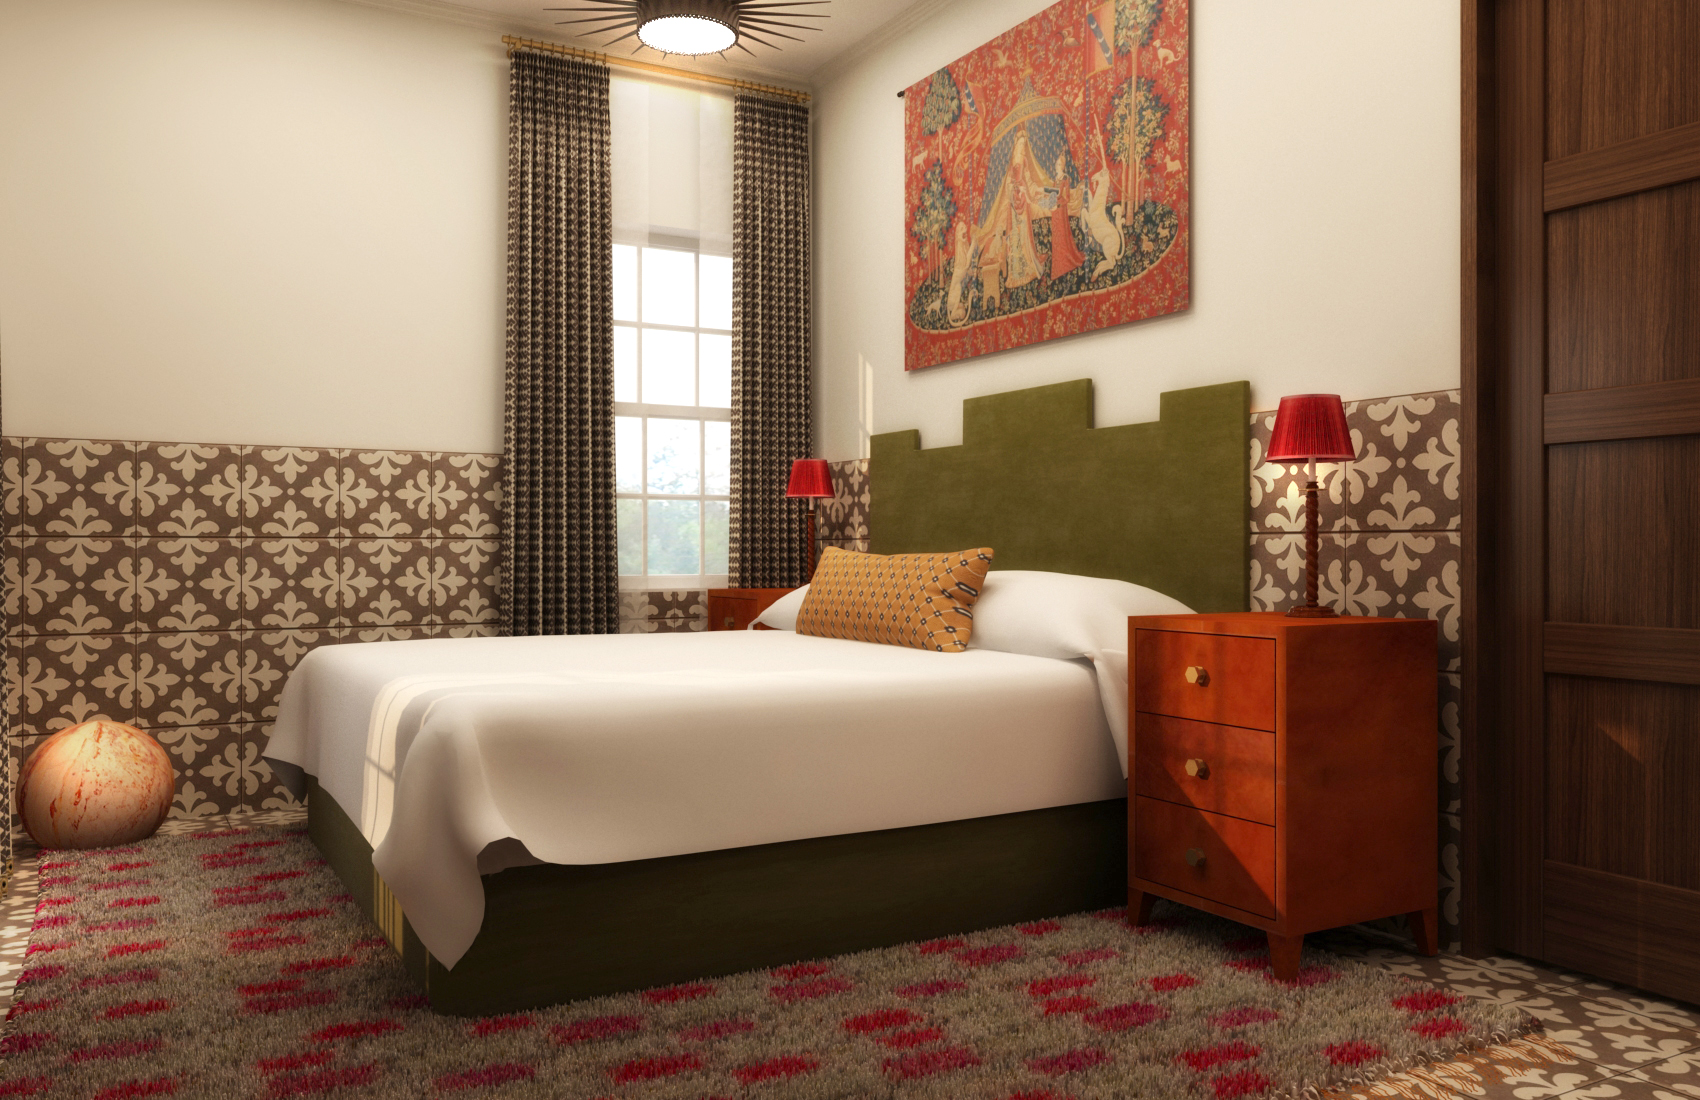 Hotel room with bed, area rug, nightstand, window and decorative fabric on wall